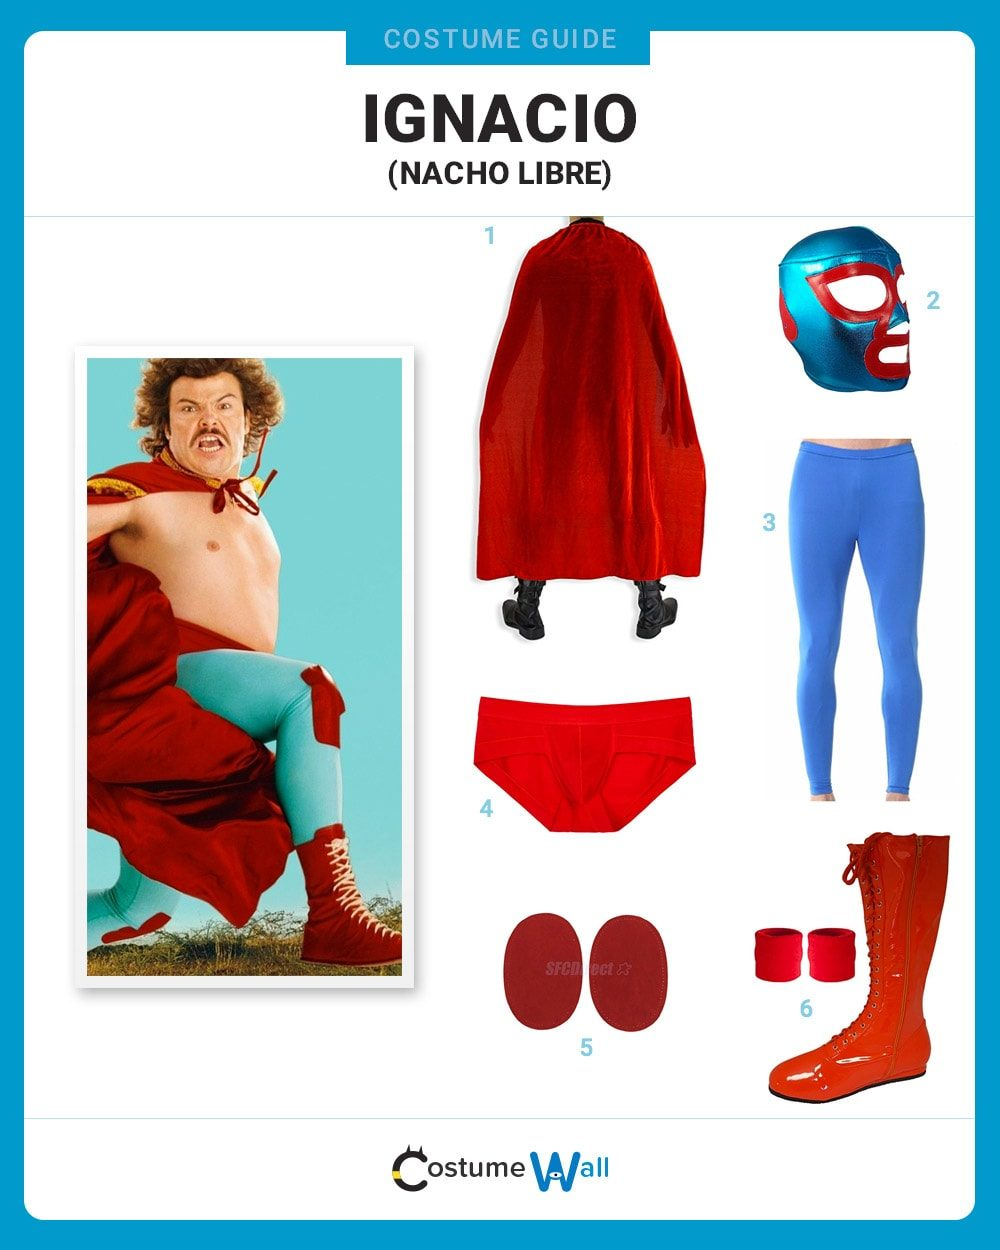 Ignacio Costume Guide